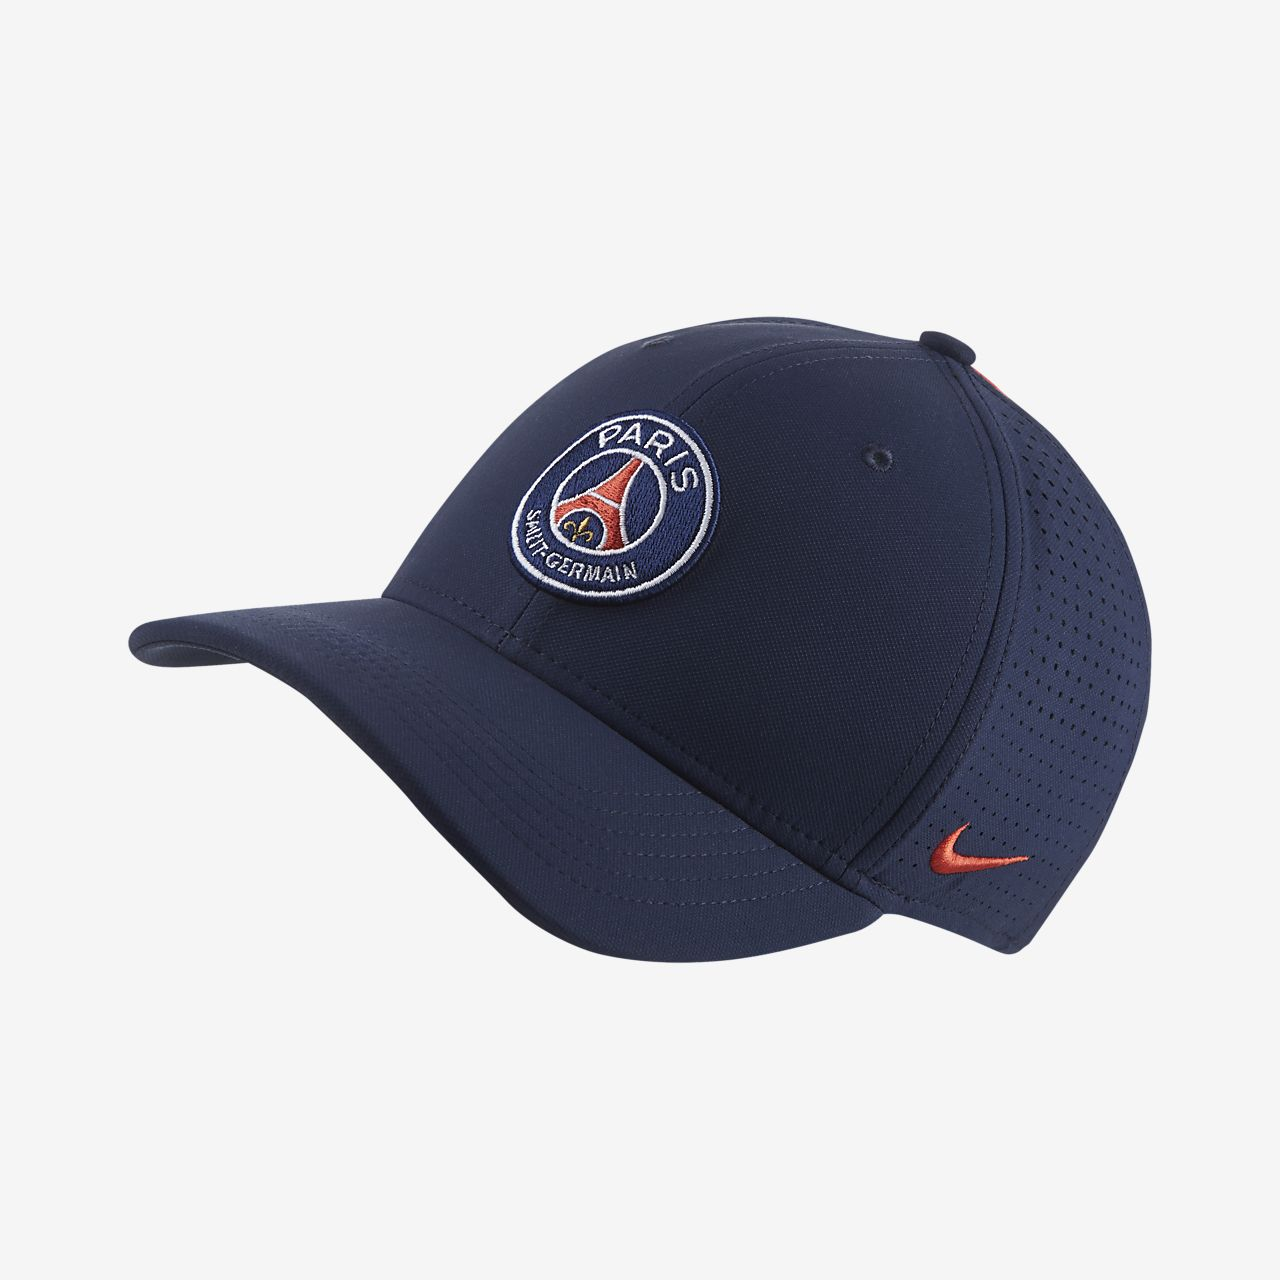 43c962790b2bd Paris Saint-Germain AeroBill Classic99 Adjustable Hat. Nike.com RO